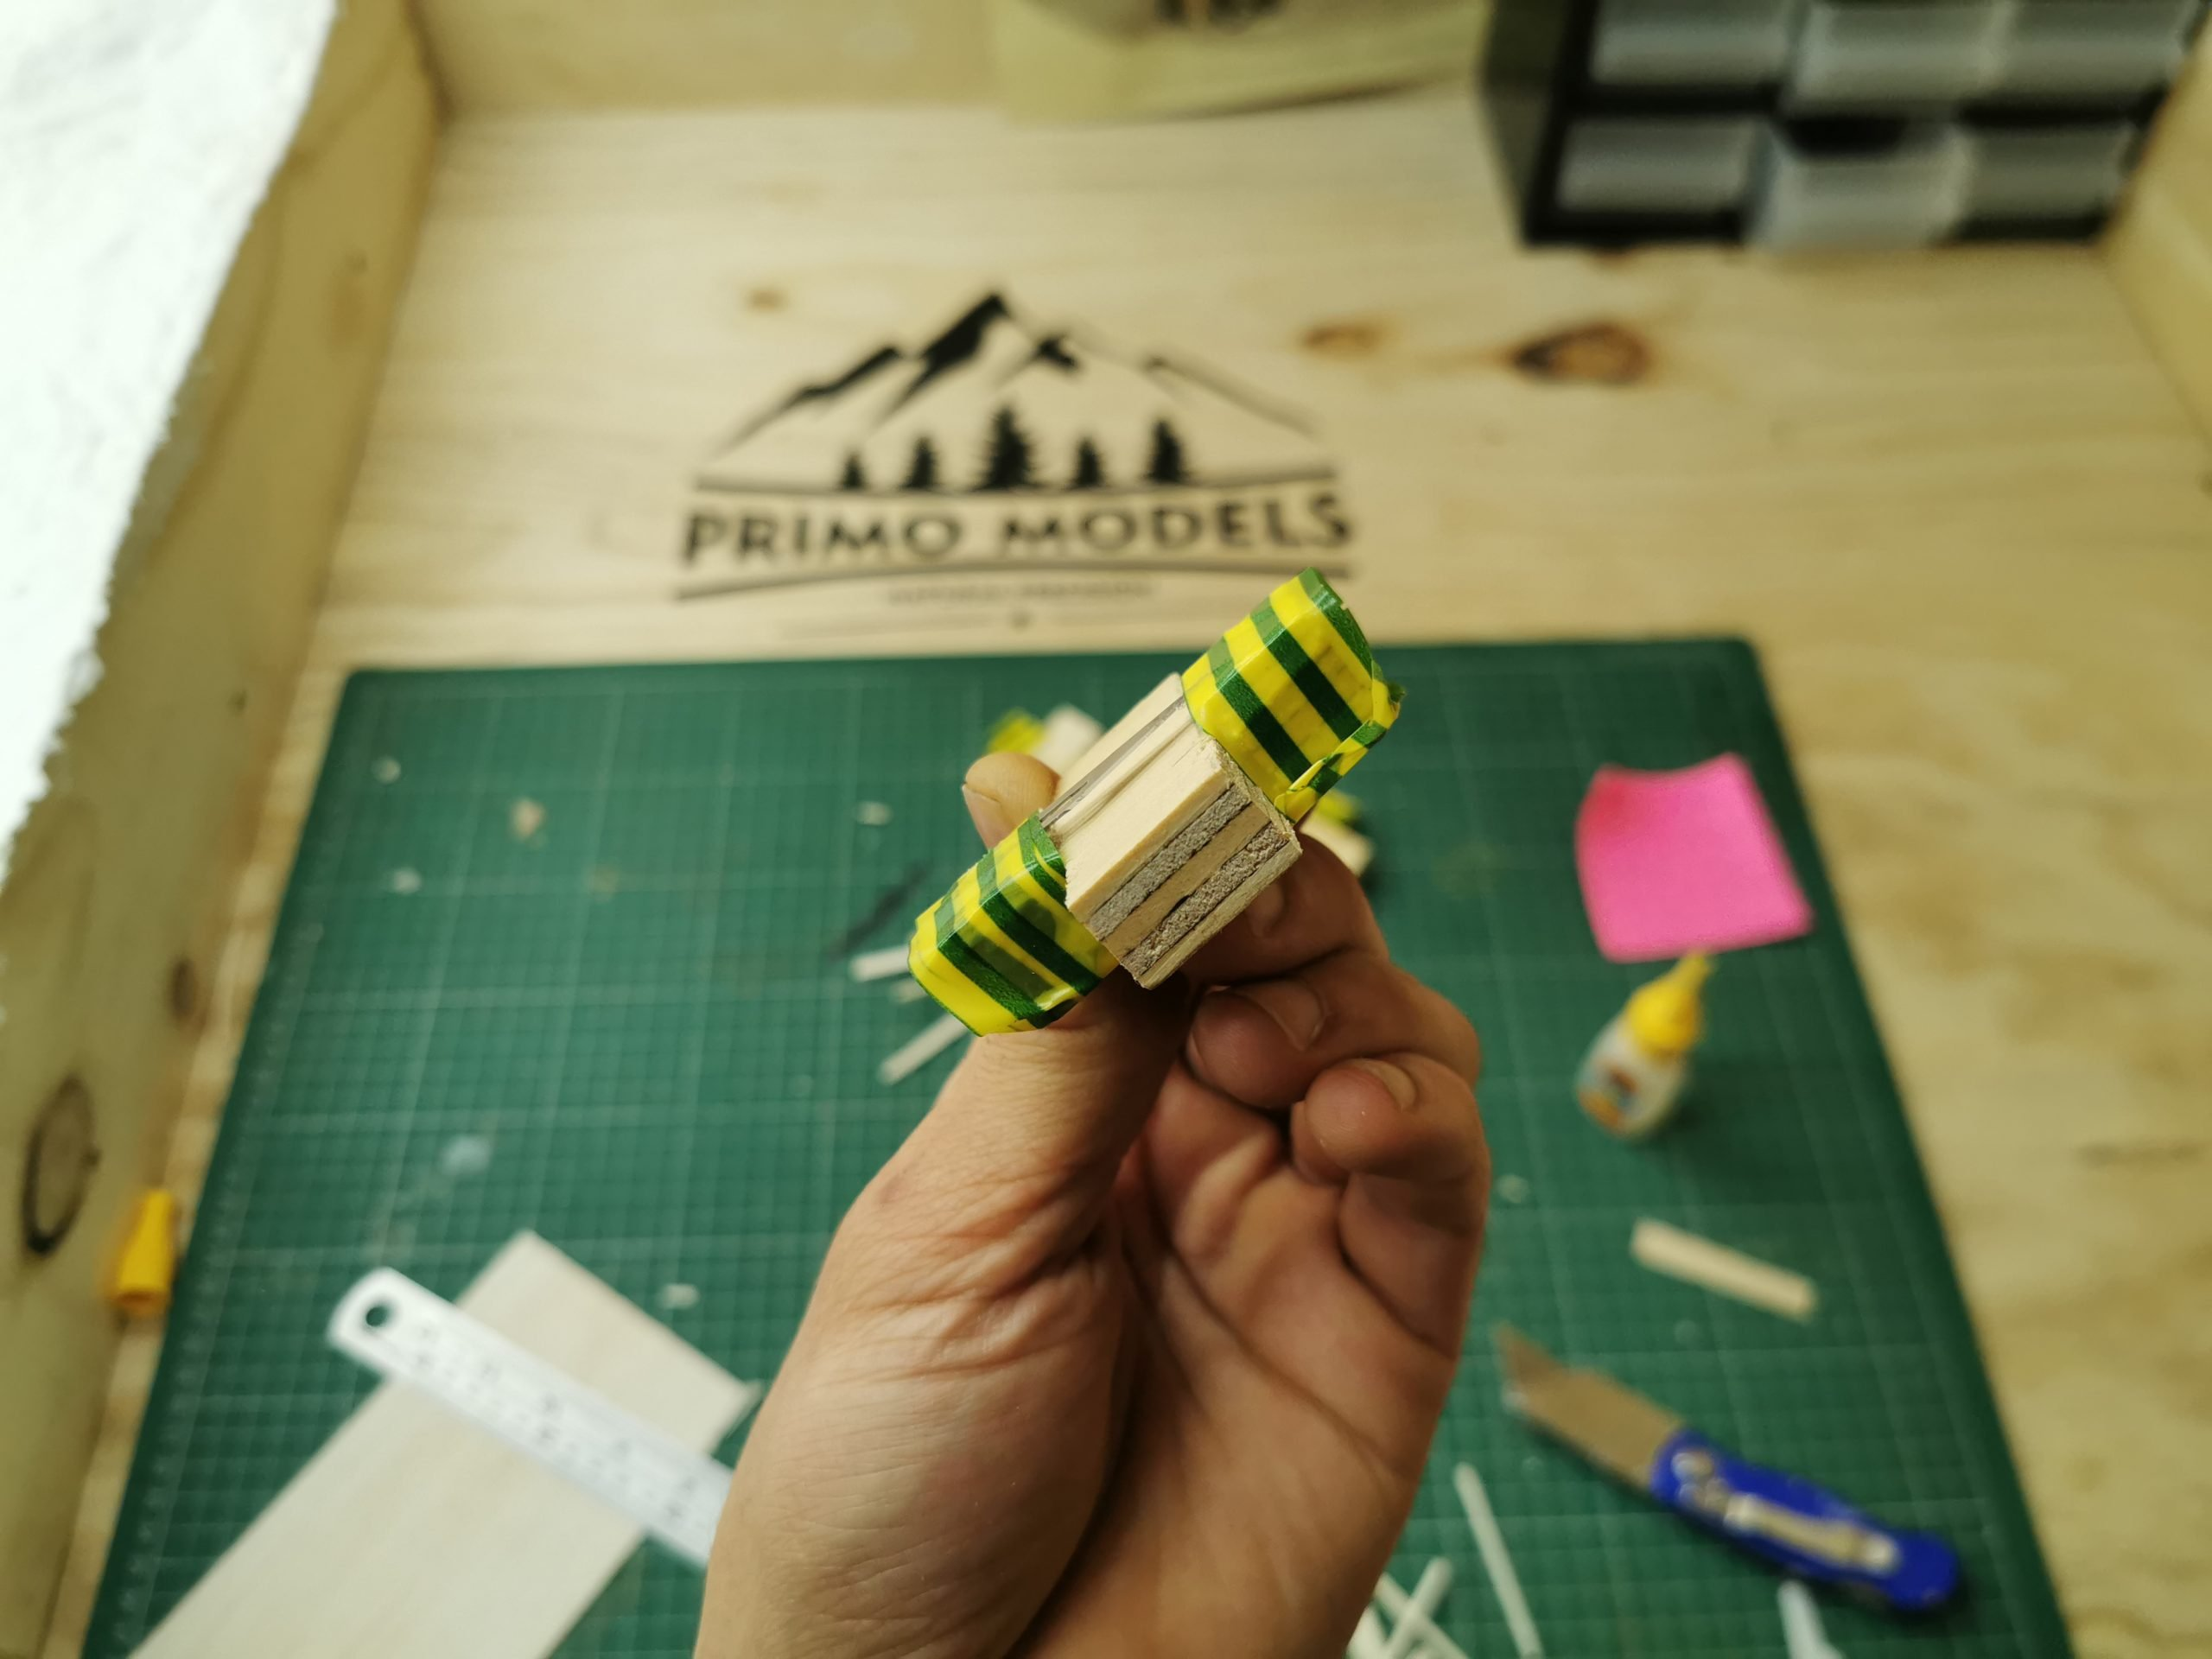 Ready to use Primo Models plank maker.